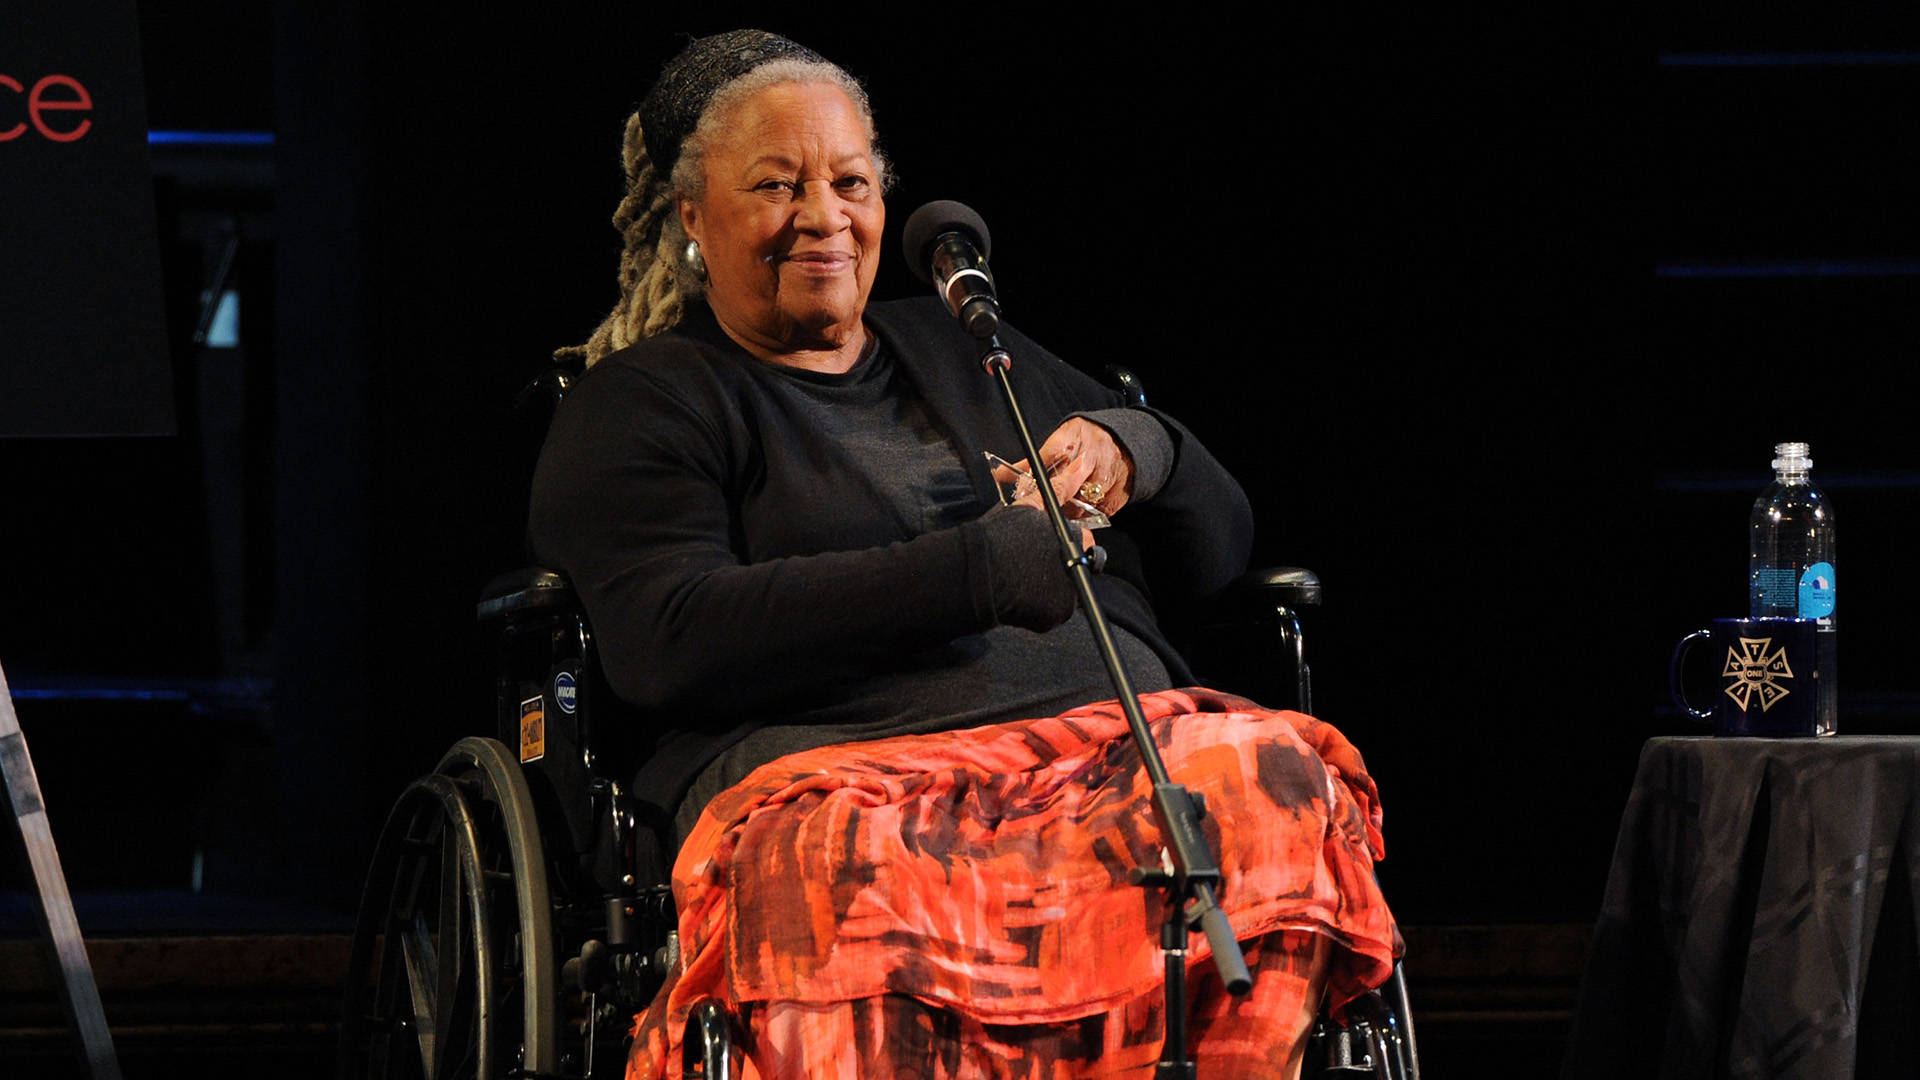 Toni Morrison attends Art & Social Activism, a discussion on Broadway with Ta-Nehisi Coates, Toni Morrison and Sonia Sanchez on June 15, 2016 in New York City.  Craig Barritt/Getty Images for The Stella Adler Studio of Acting